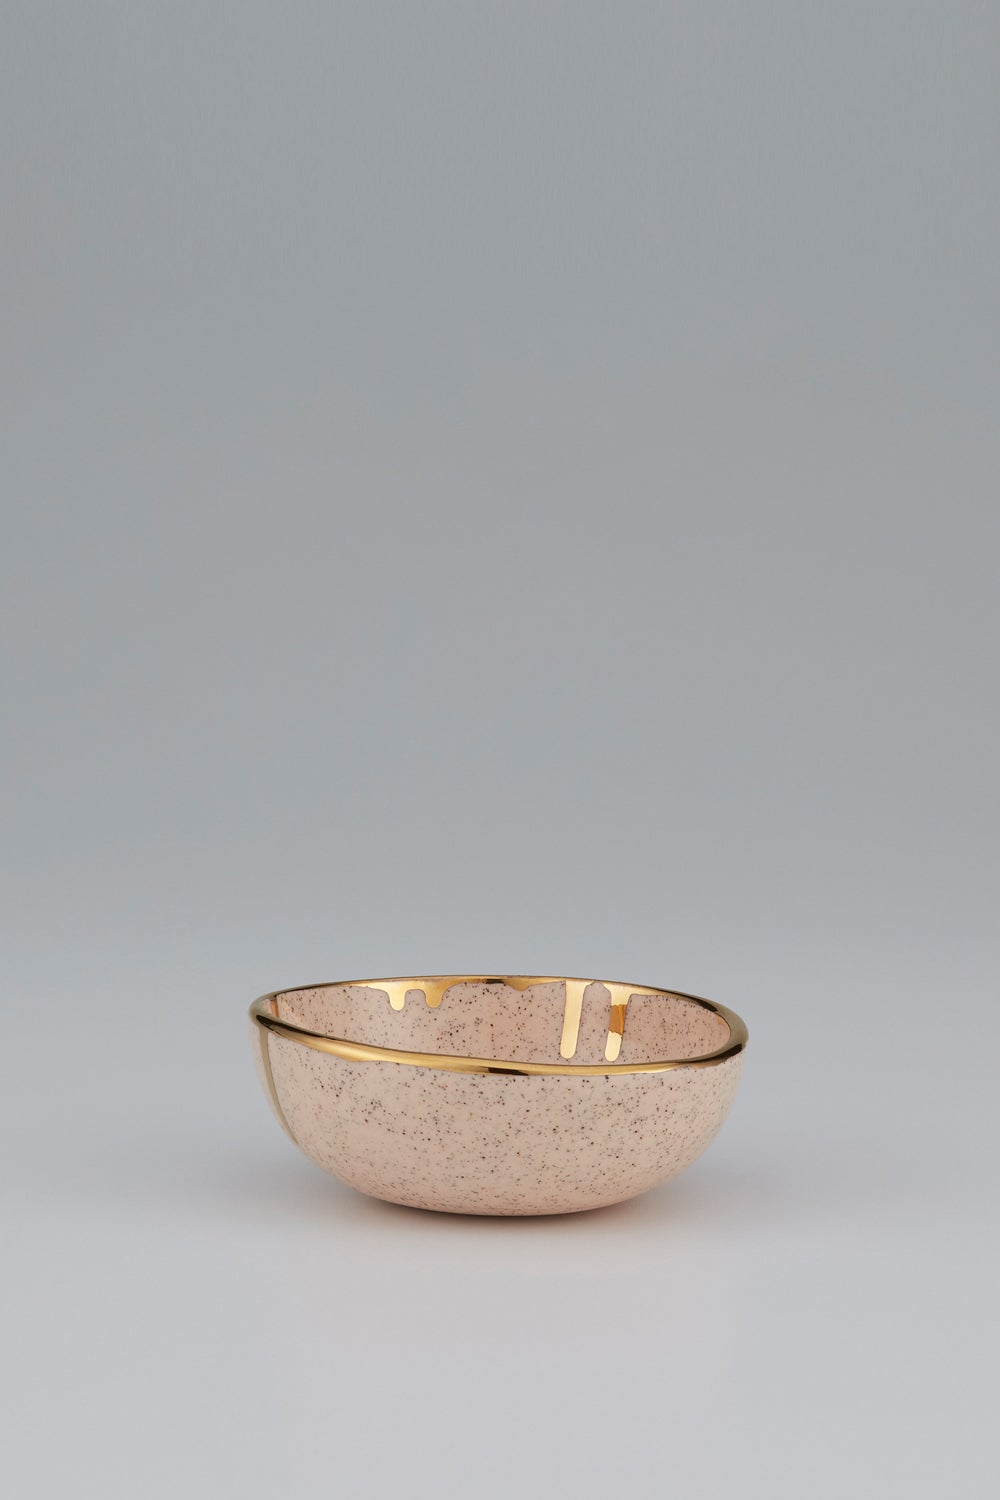 Claybird Large Tinted Ring Bowl with Gold Drip Rim Speckled Peach